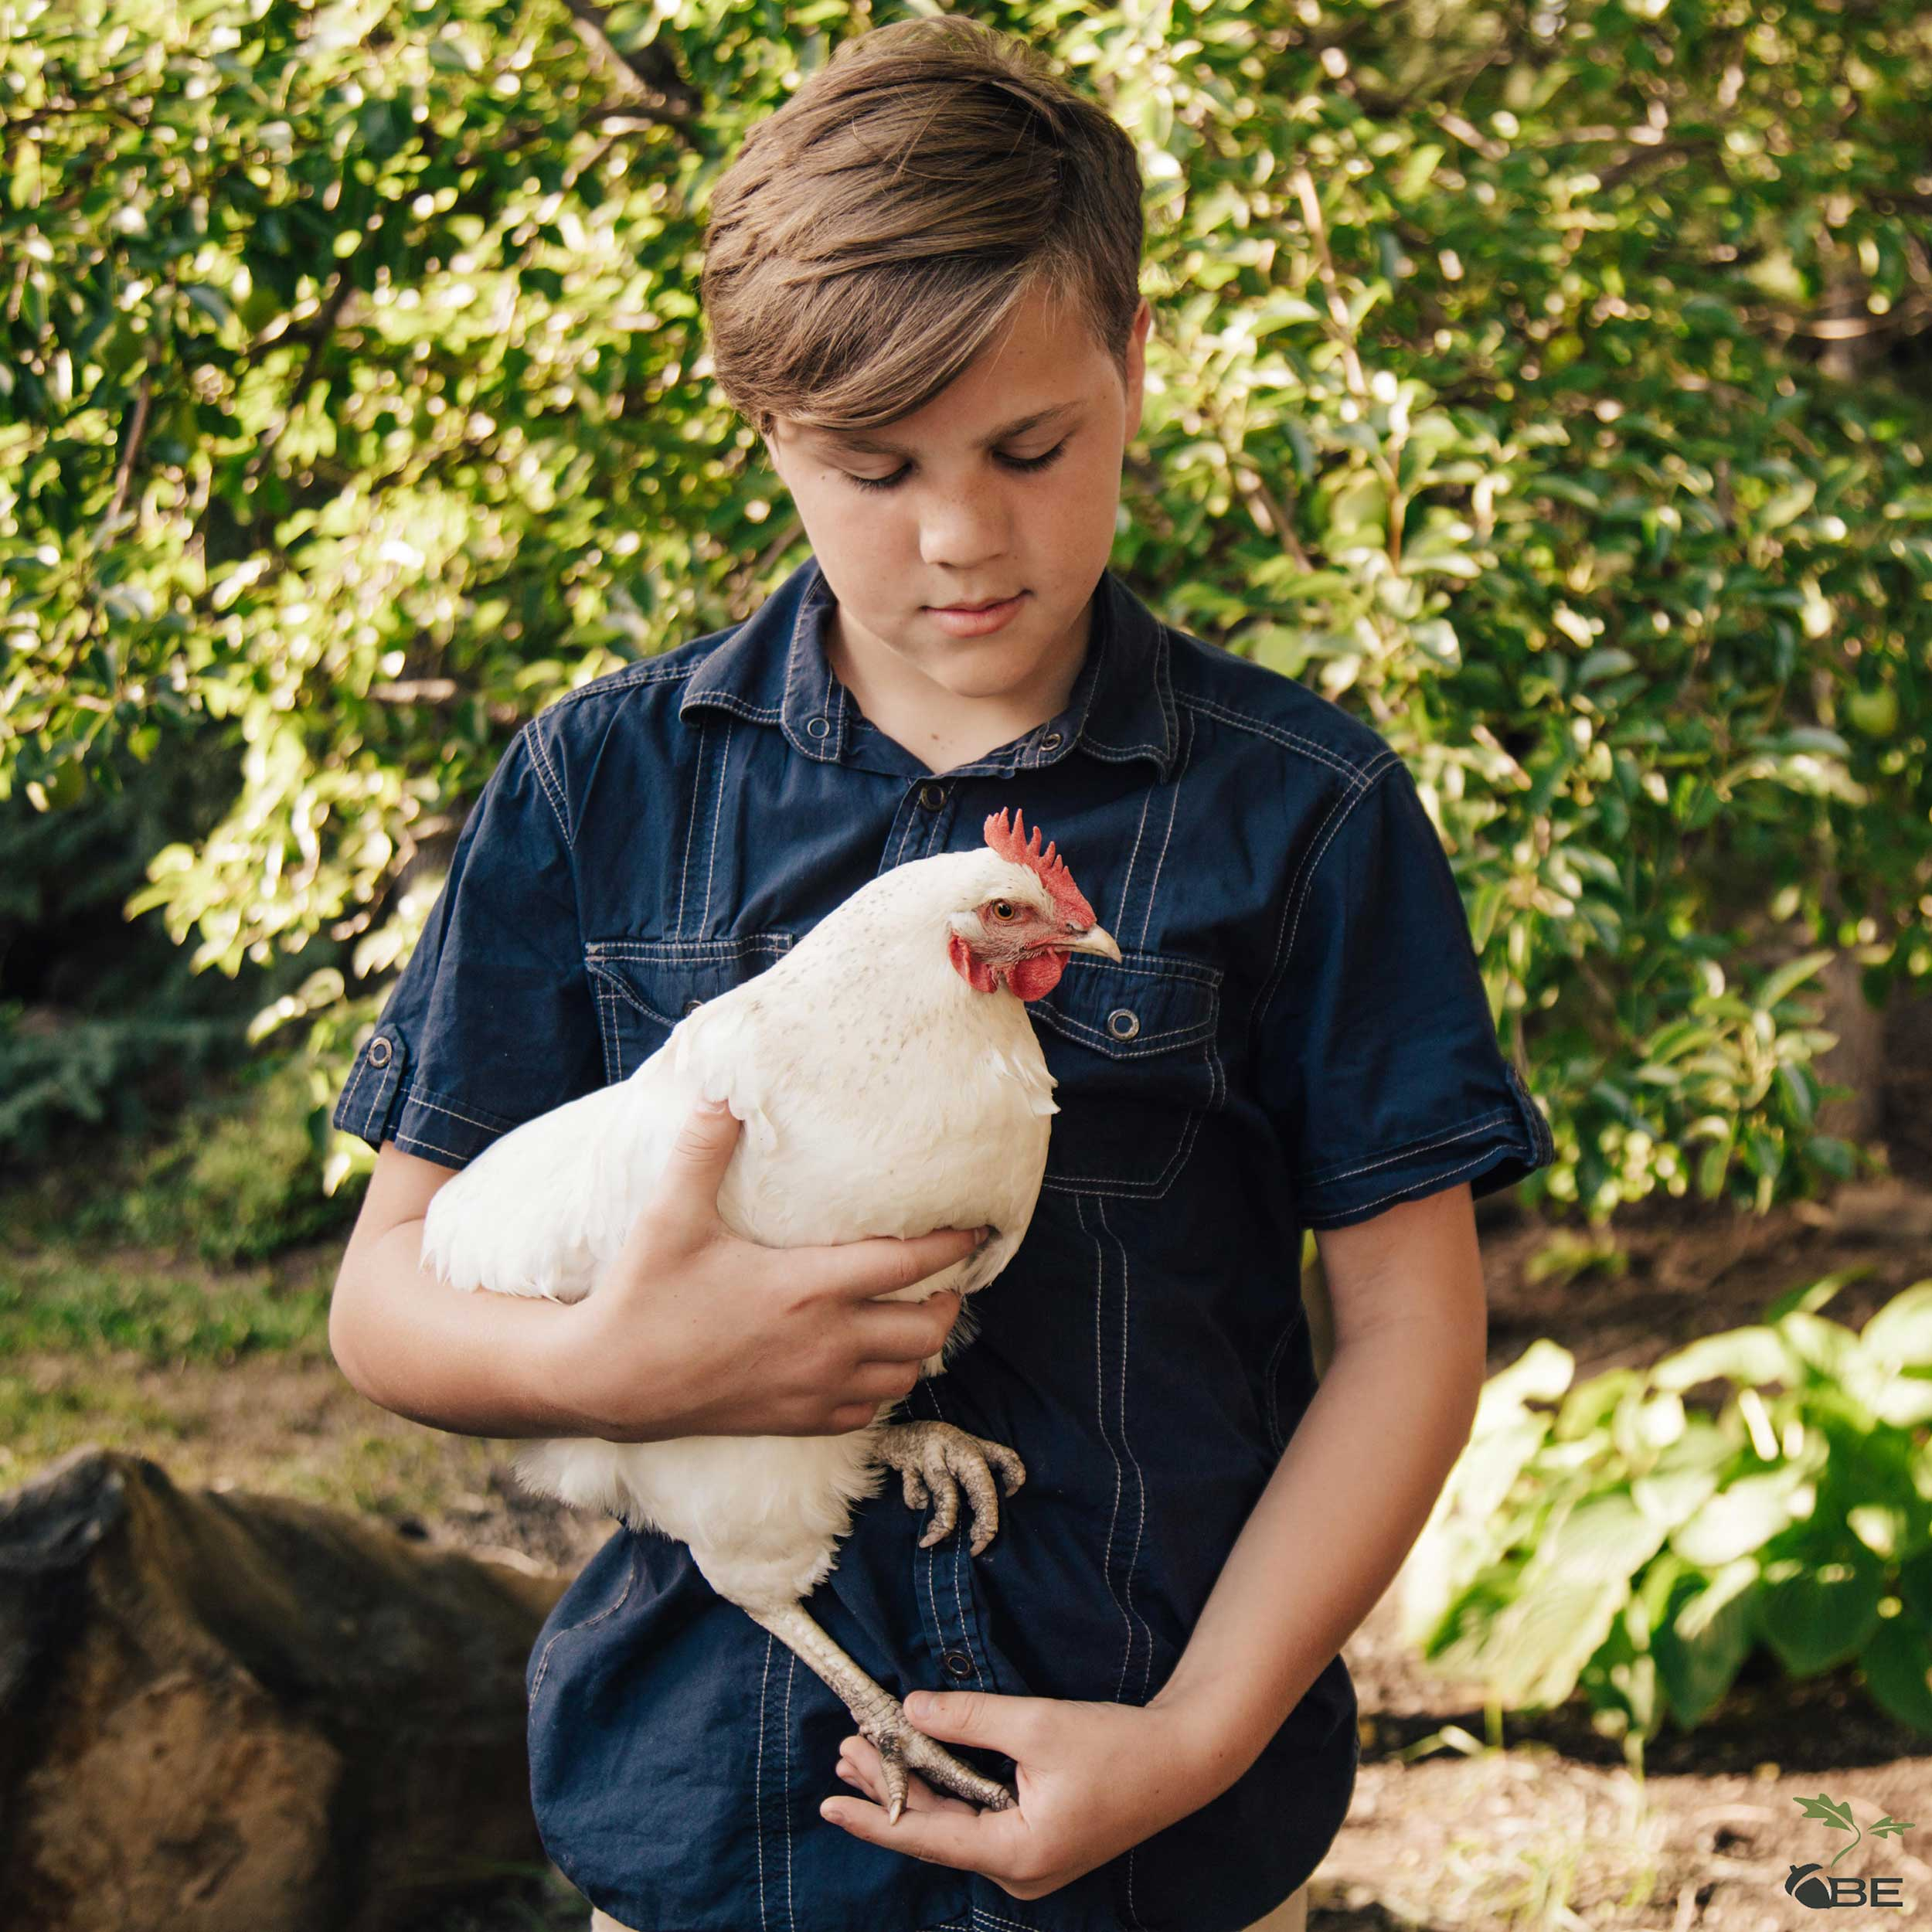 Young boy holding white chicken